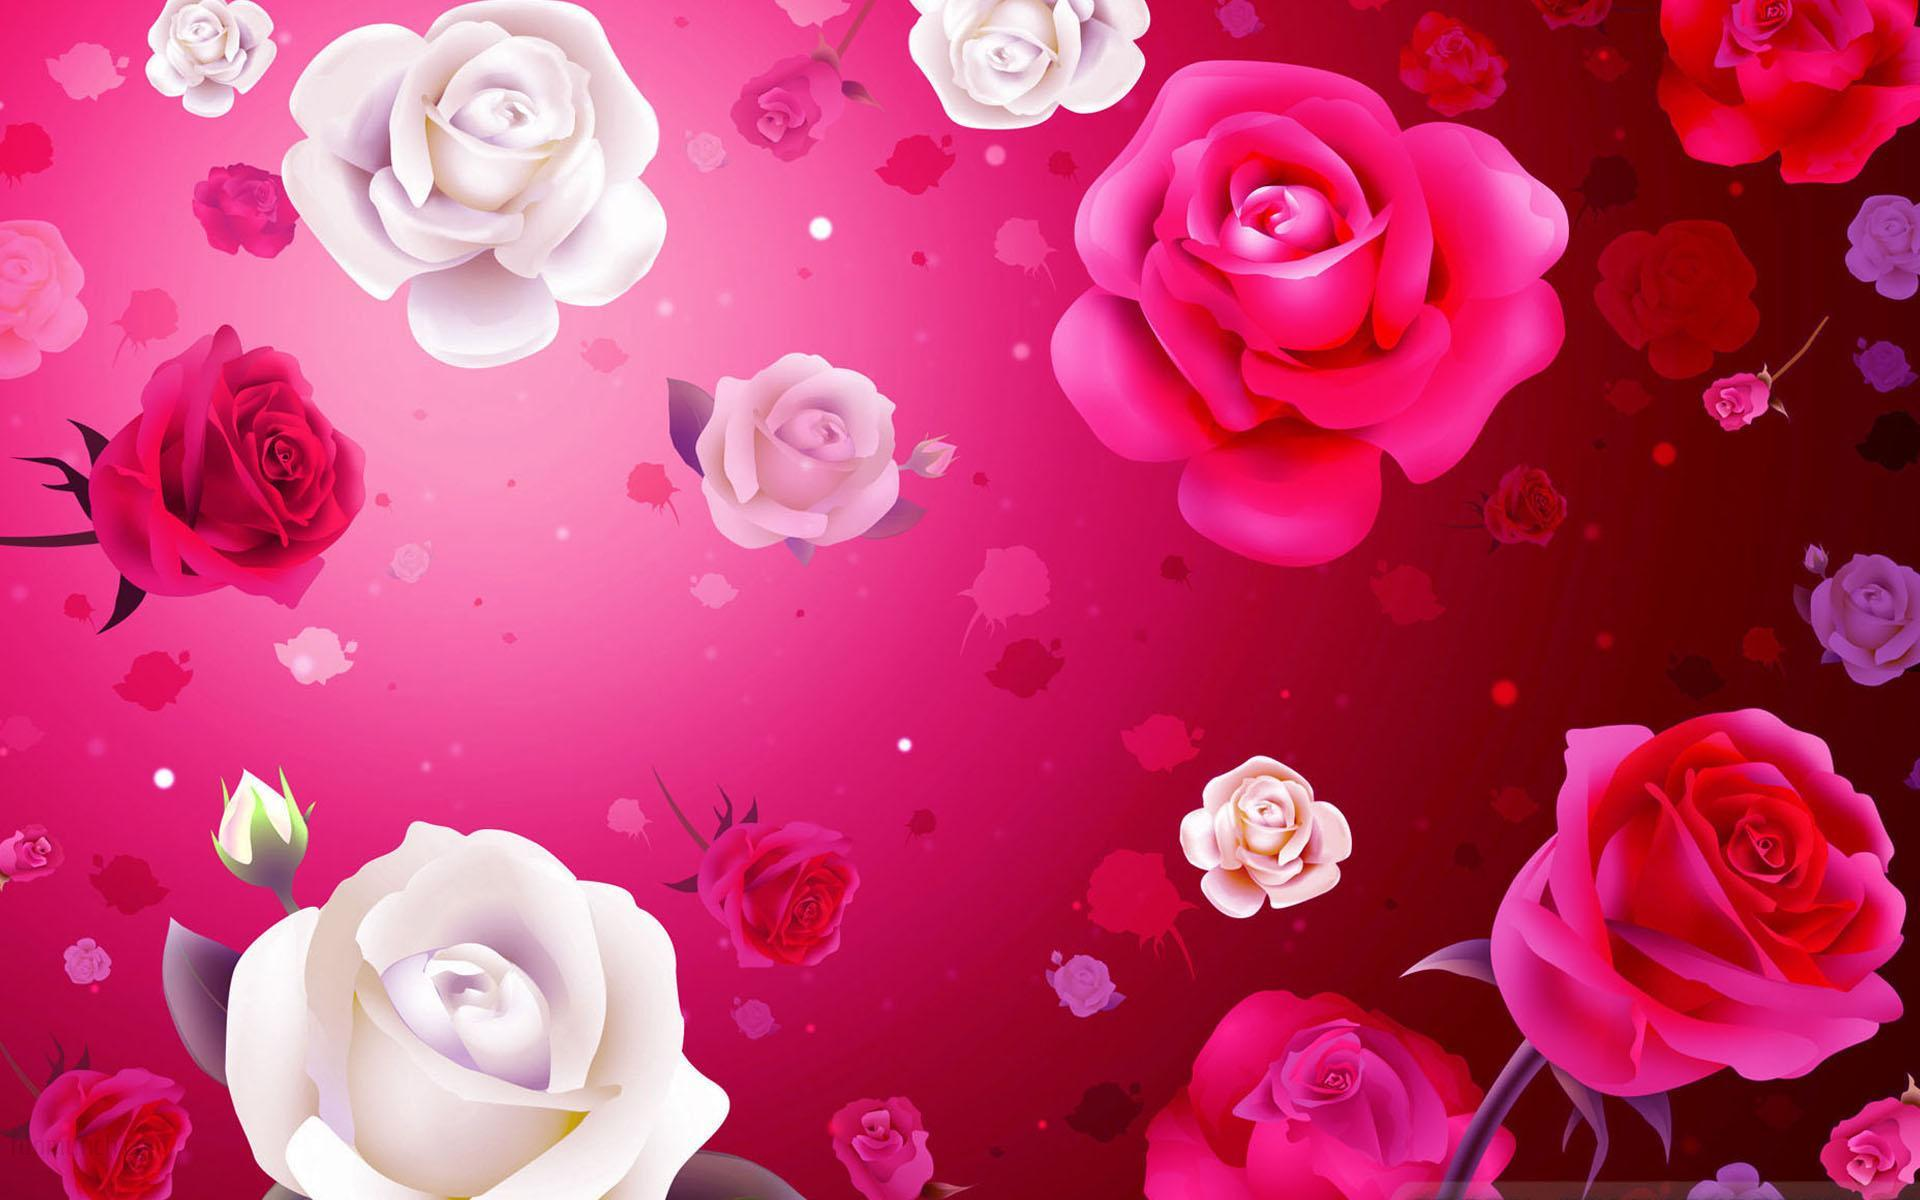 Valentines Day Desktop Wallpaper 8518 Hd Wallpapers in Celebrations 1920x1200